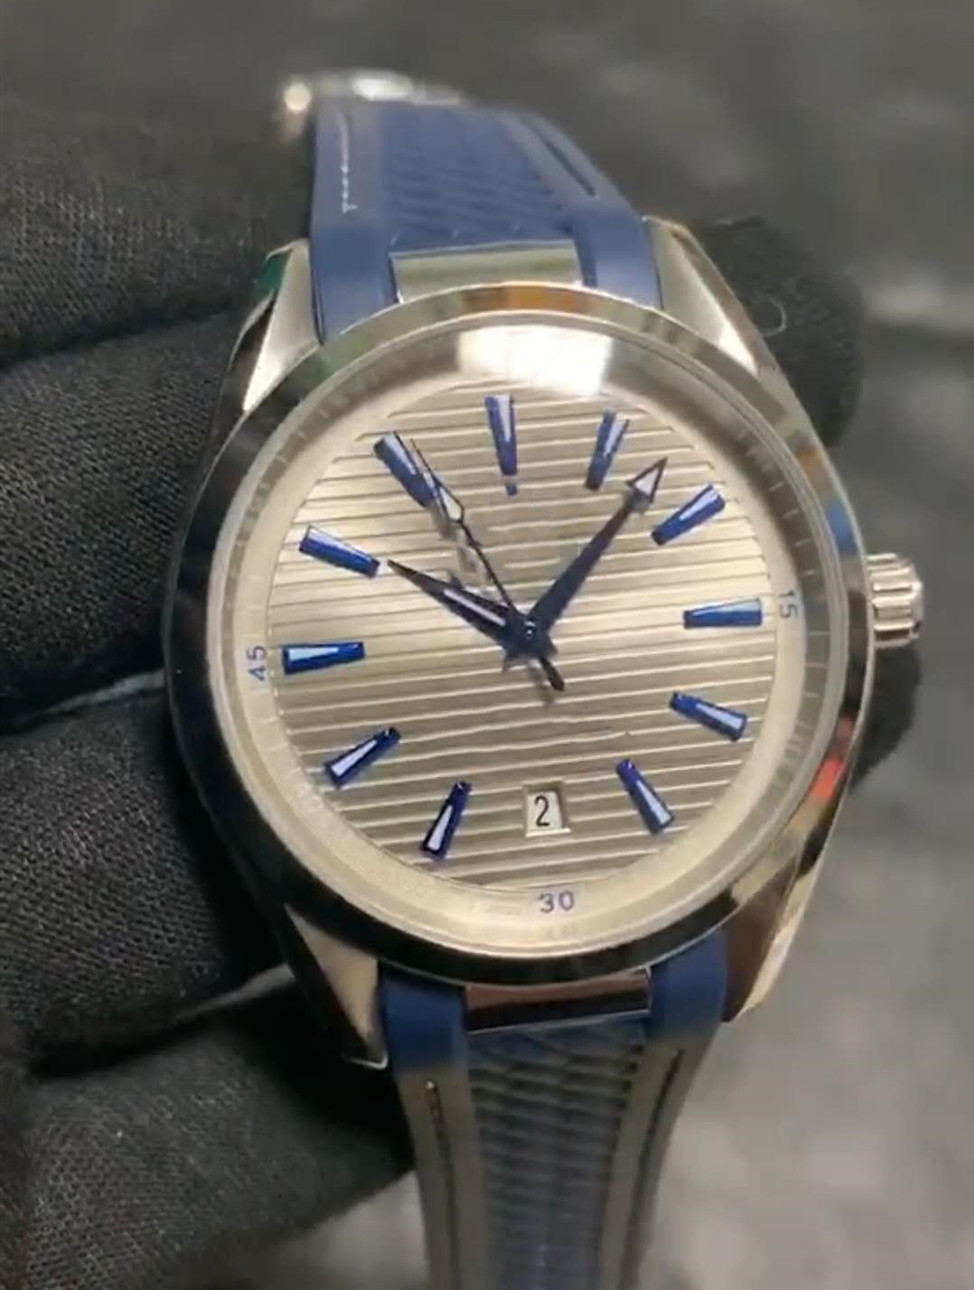 Aaa Watch, Men's Fashion Rubber Automatic Machinery. Threaded Watch. Increasingly High Quality.